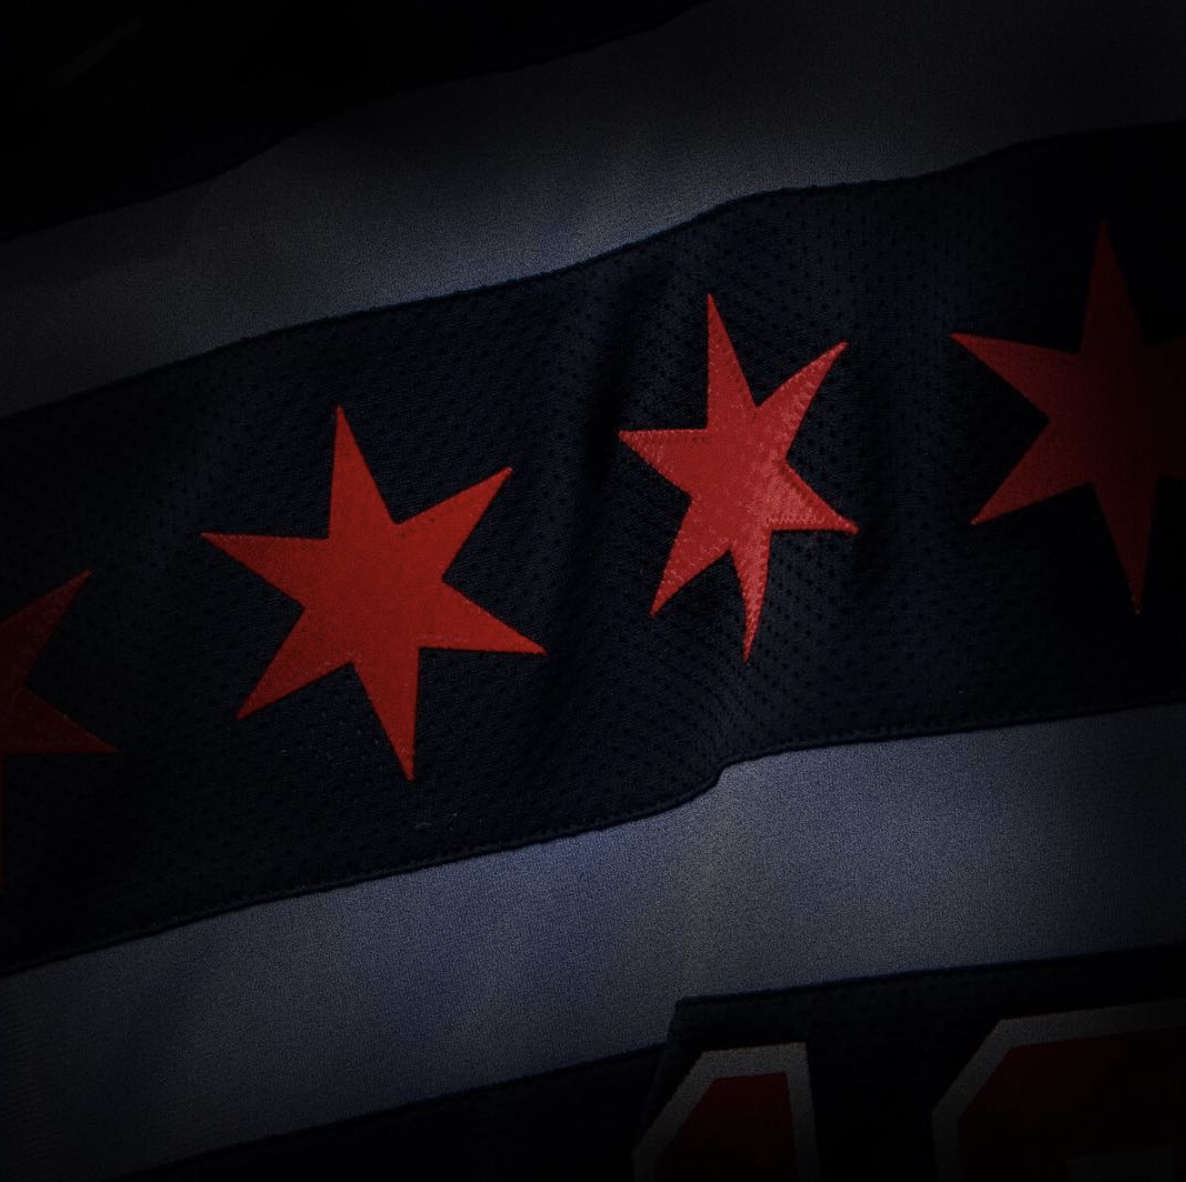 official photos 2d8a6 78e5d Chicago Bulls Reveal New City Edition Jersey - WearTesters